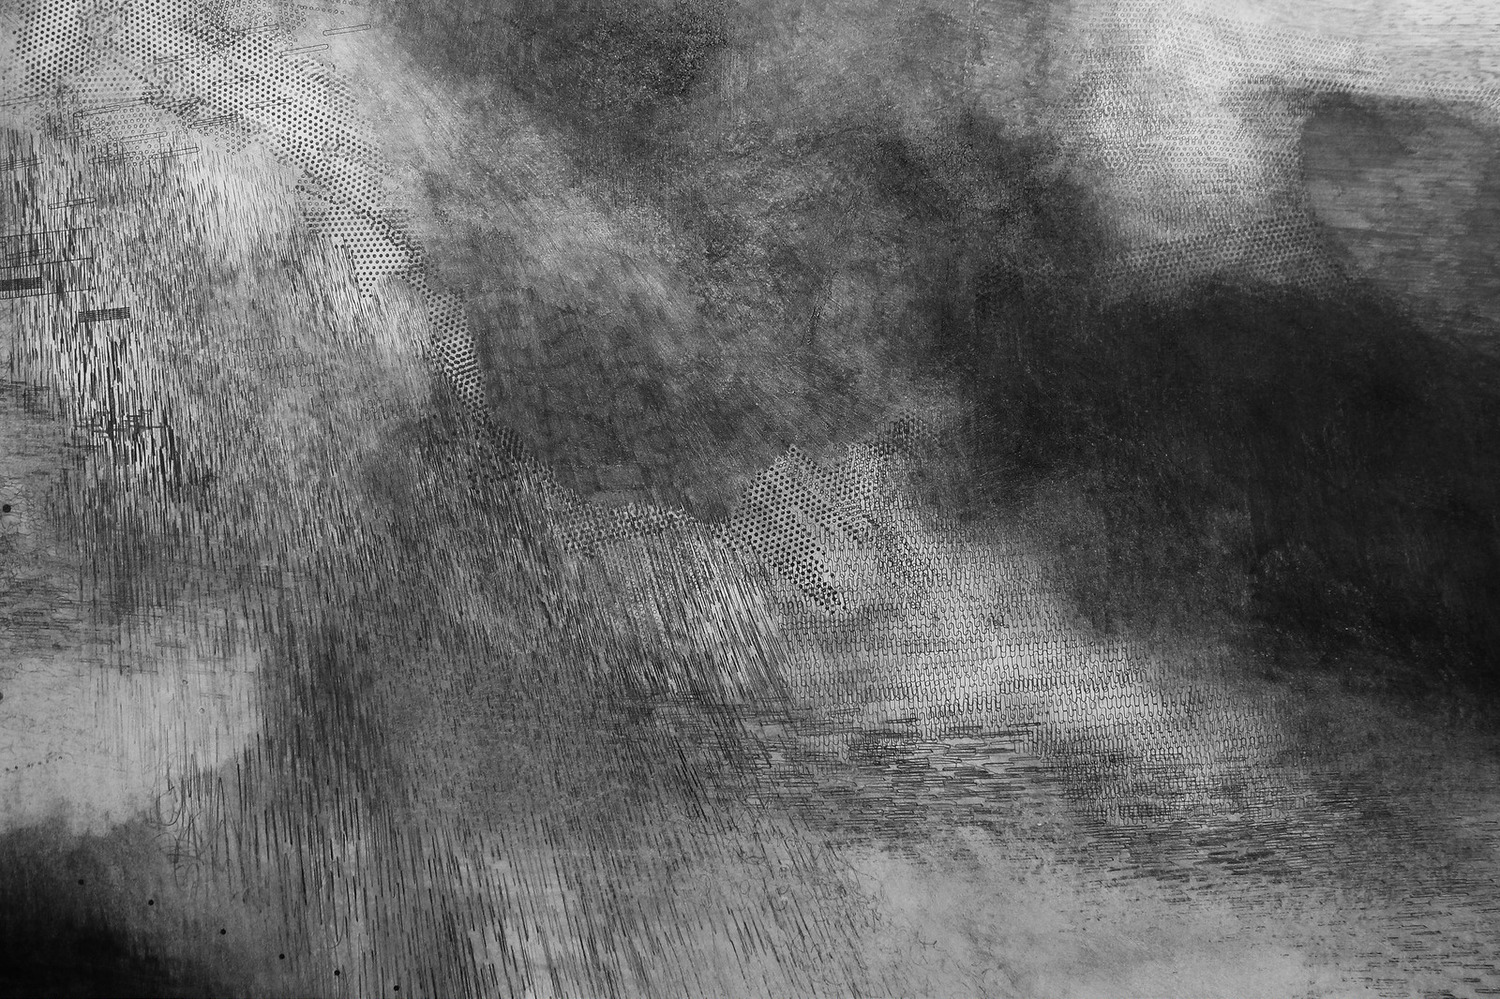 Emma McNally, Choral Field 9, 2014 (detail), graphite on paper